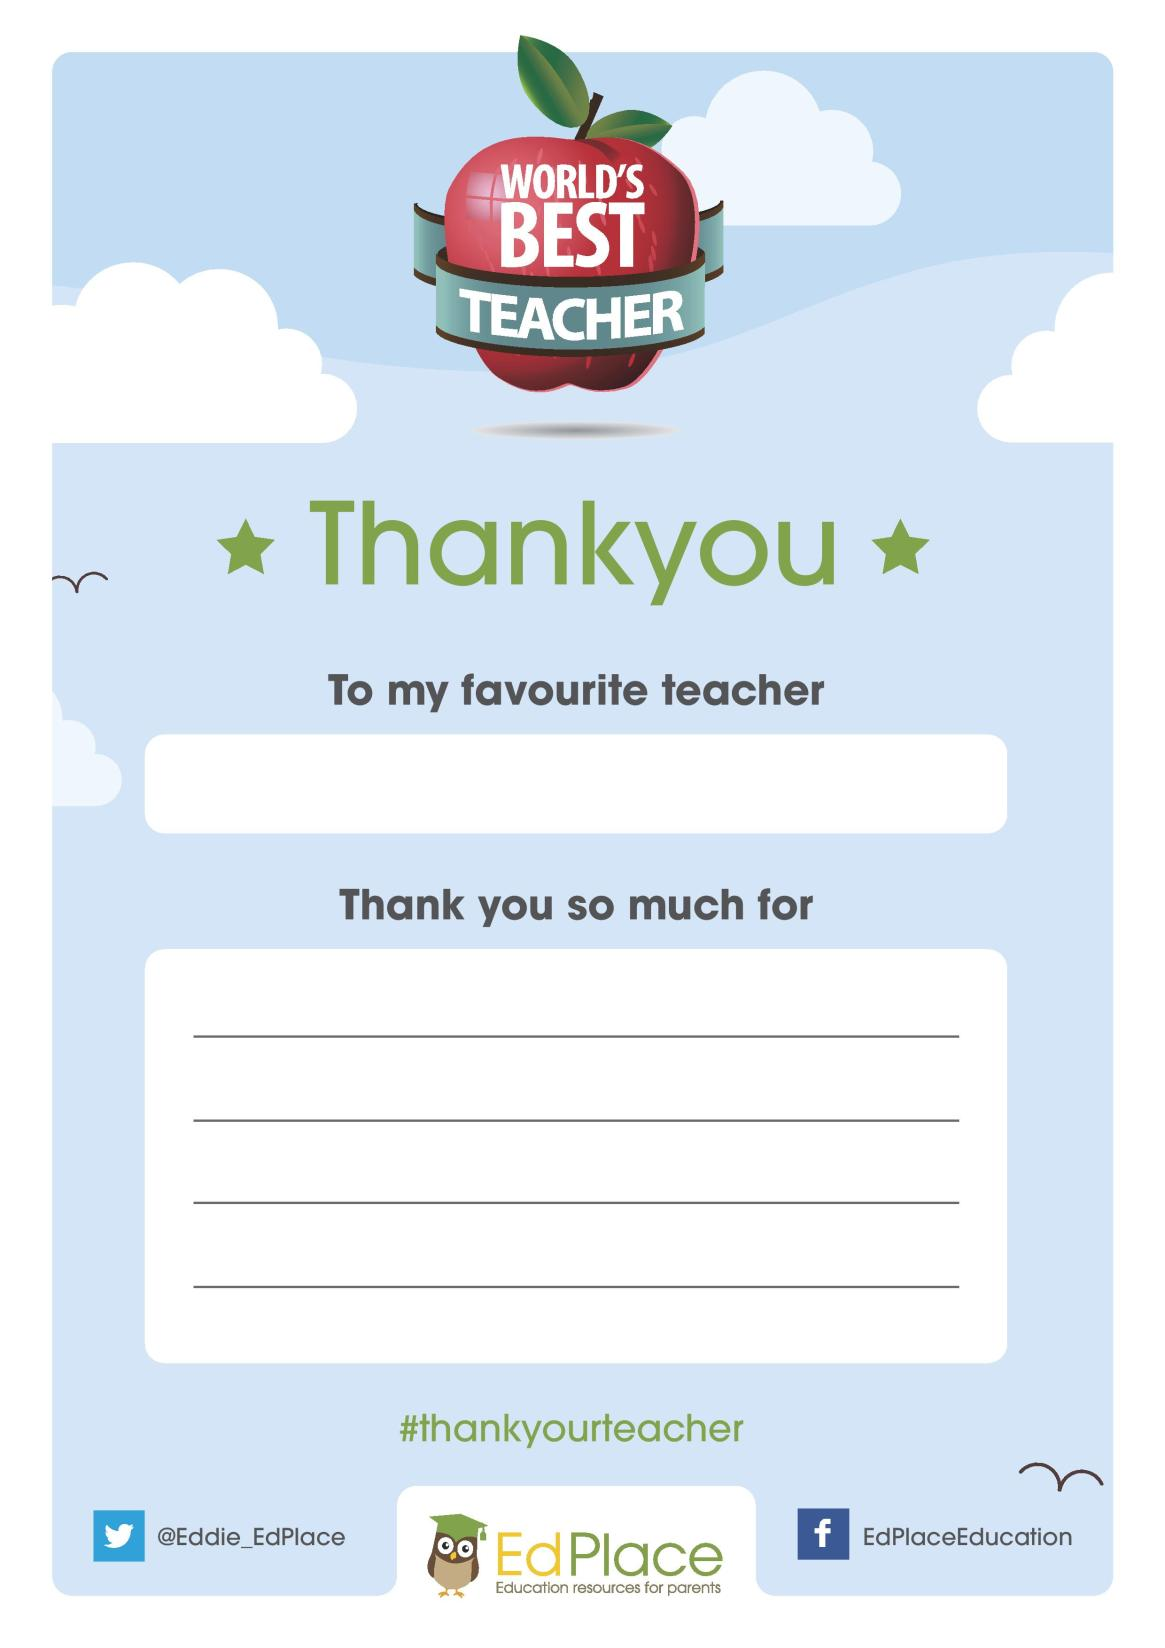 World Teachers Day printable thank you card to show appreciation for a favourite teacher